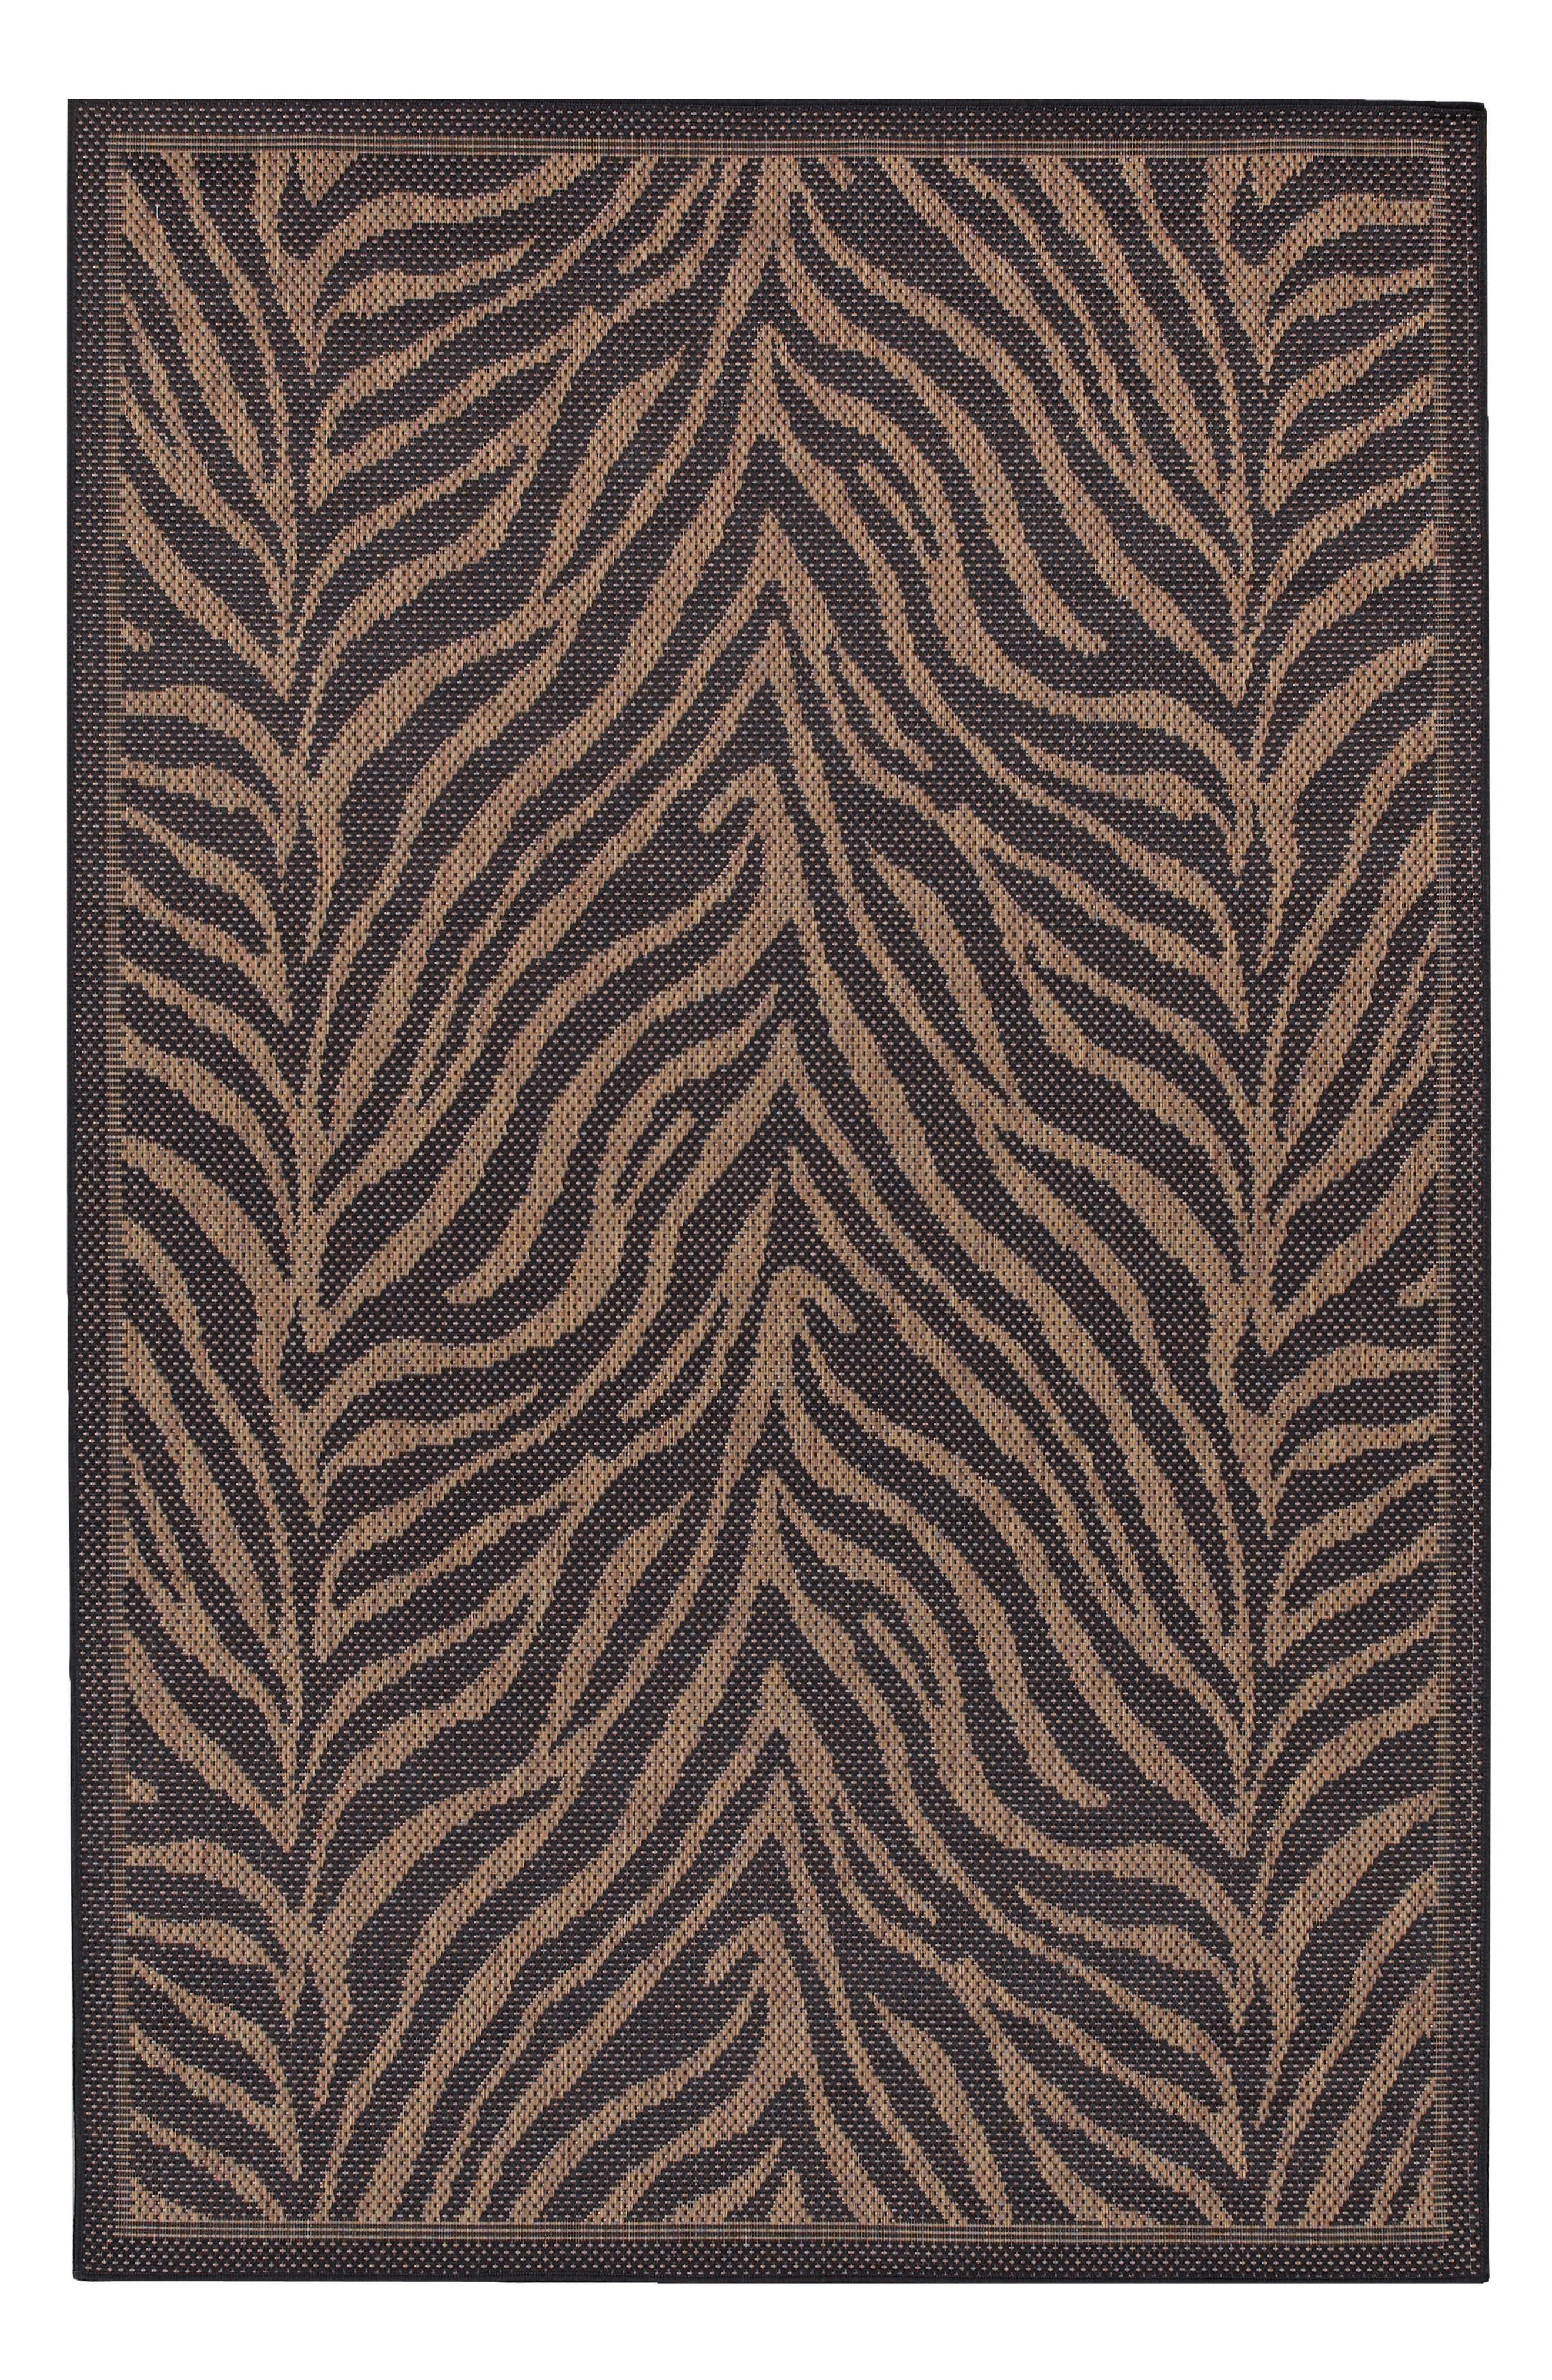 Muted zebra stripes add a subtly wild touch to a versatile rug power-loomed in fade-resistant polypropylene, making it great for high-traffic areas both inside and outside. Style Name: Couristan Recife Zebra Indoor/outdoor Rug. Style Number: 5368541. Available in stores.